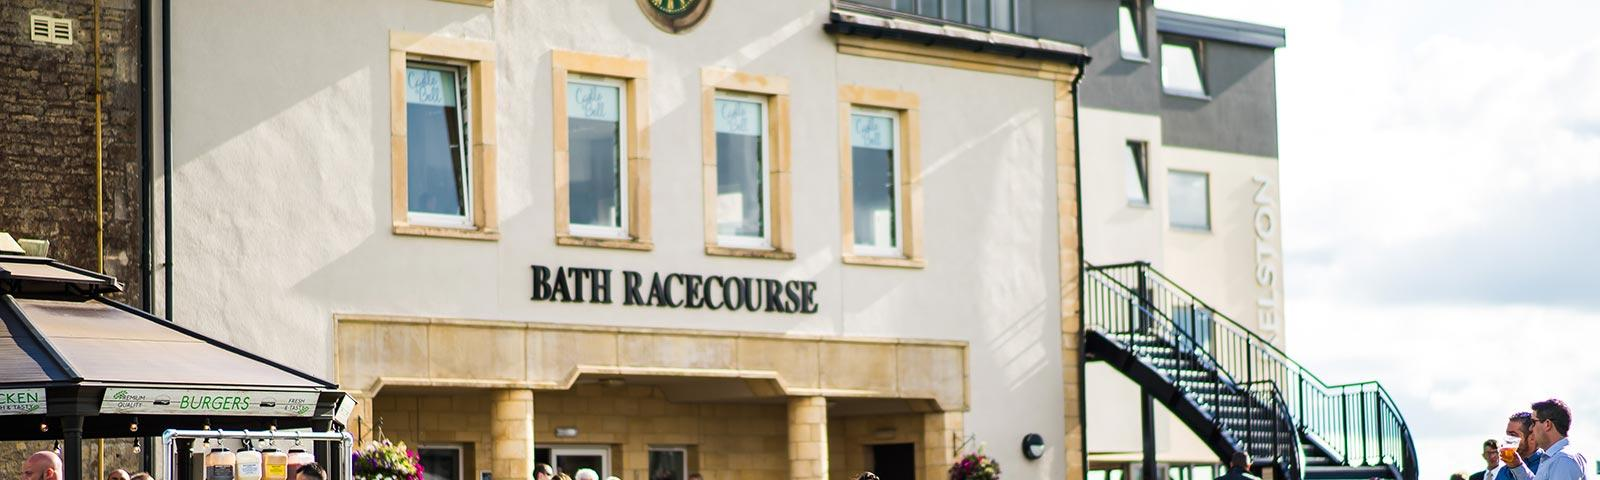 Main entrance to the Bath Racecourse grandstand.